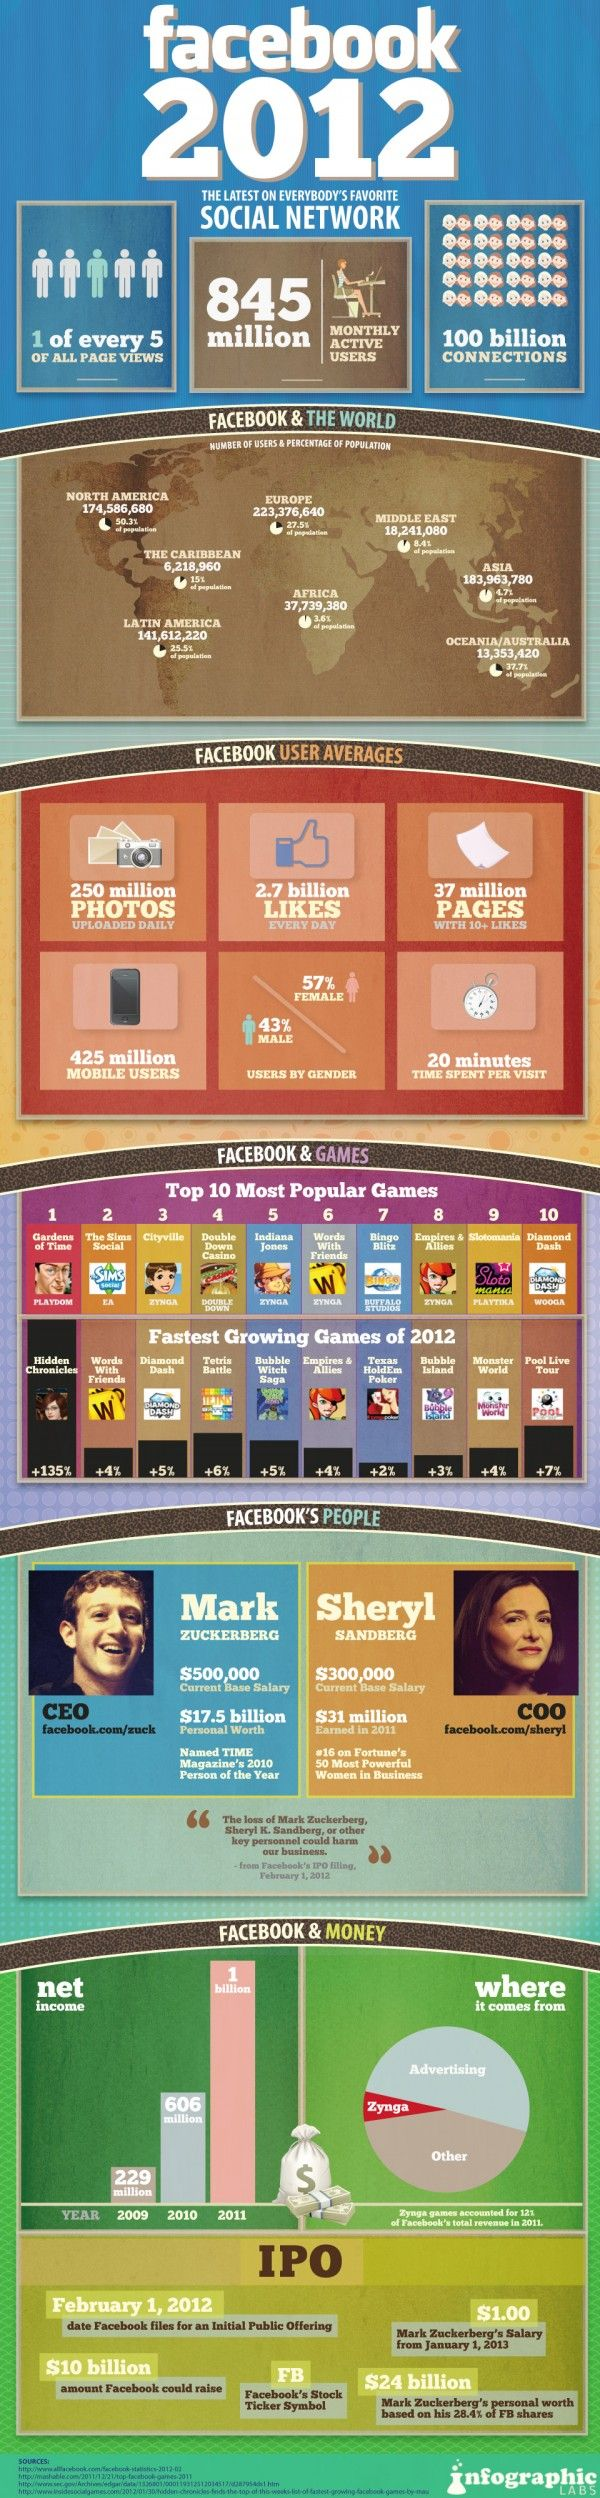 Facebook 2012 latest stats and interesting facts.: Social Network, Socialnetwork, Facebook Like, Social Media, The Games, Facebook 2012, Infographic, Socialmedia, Facebook2012